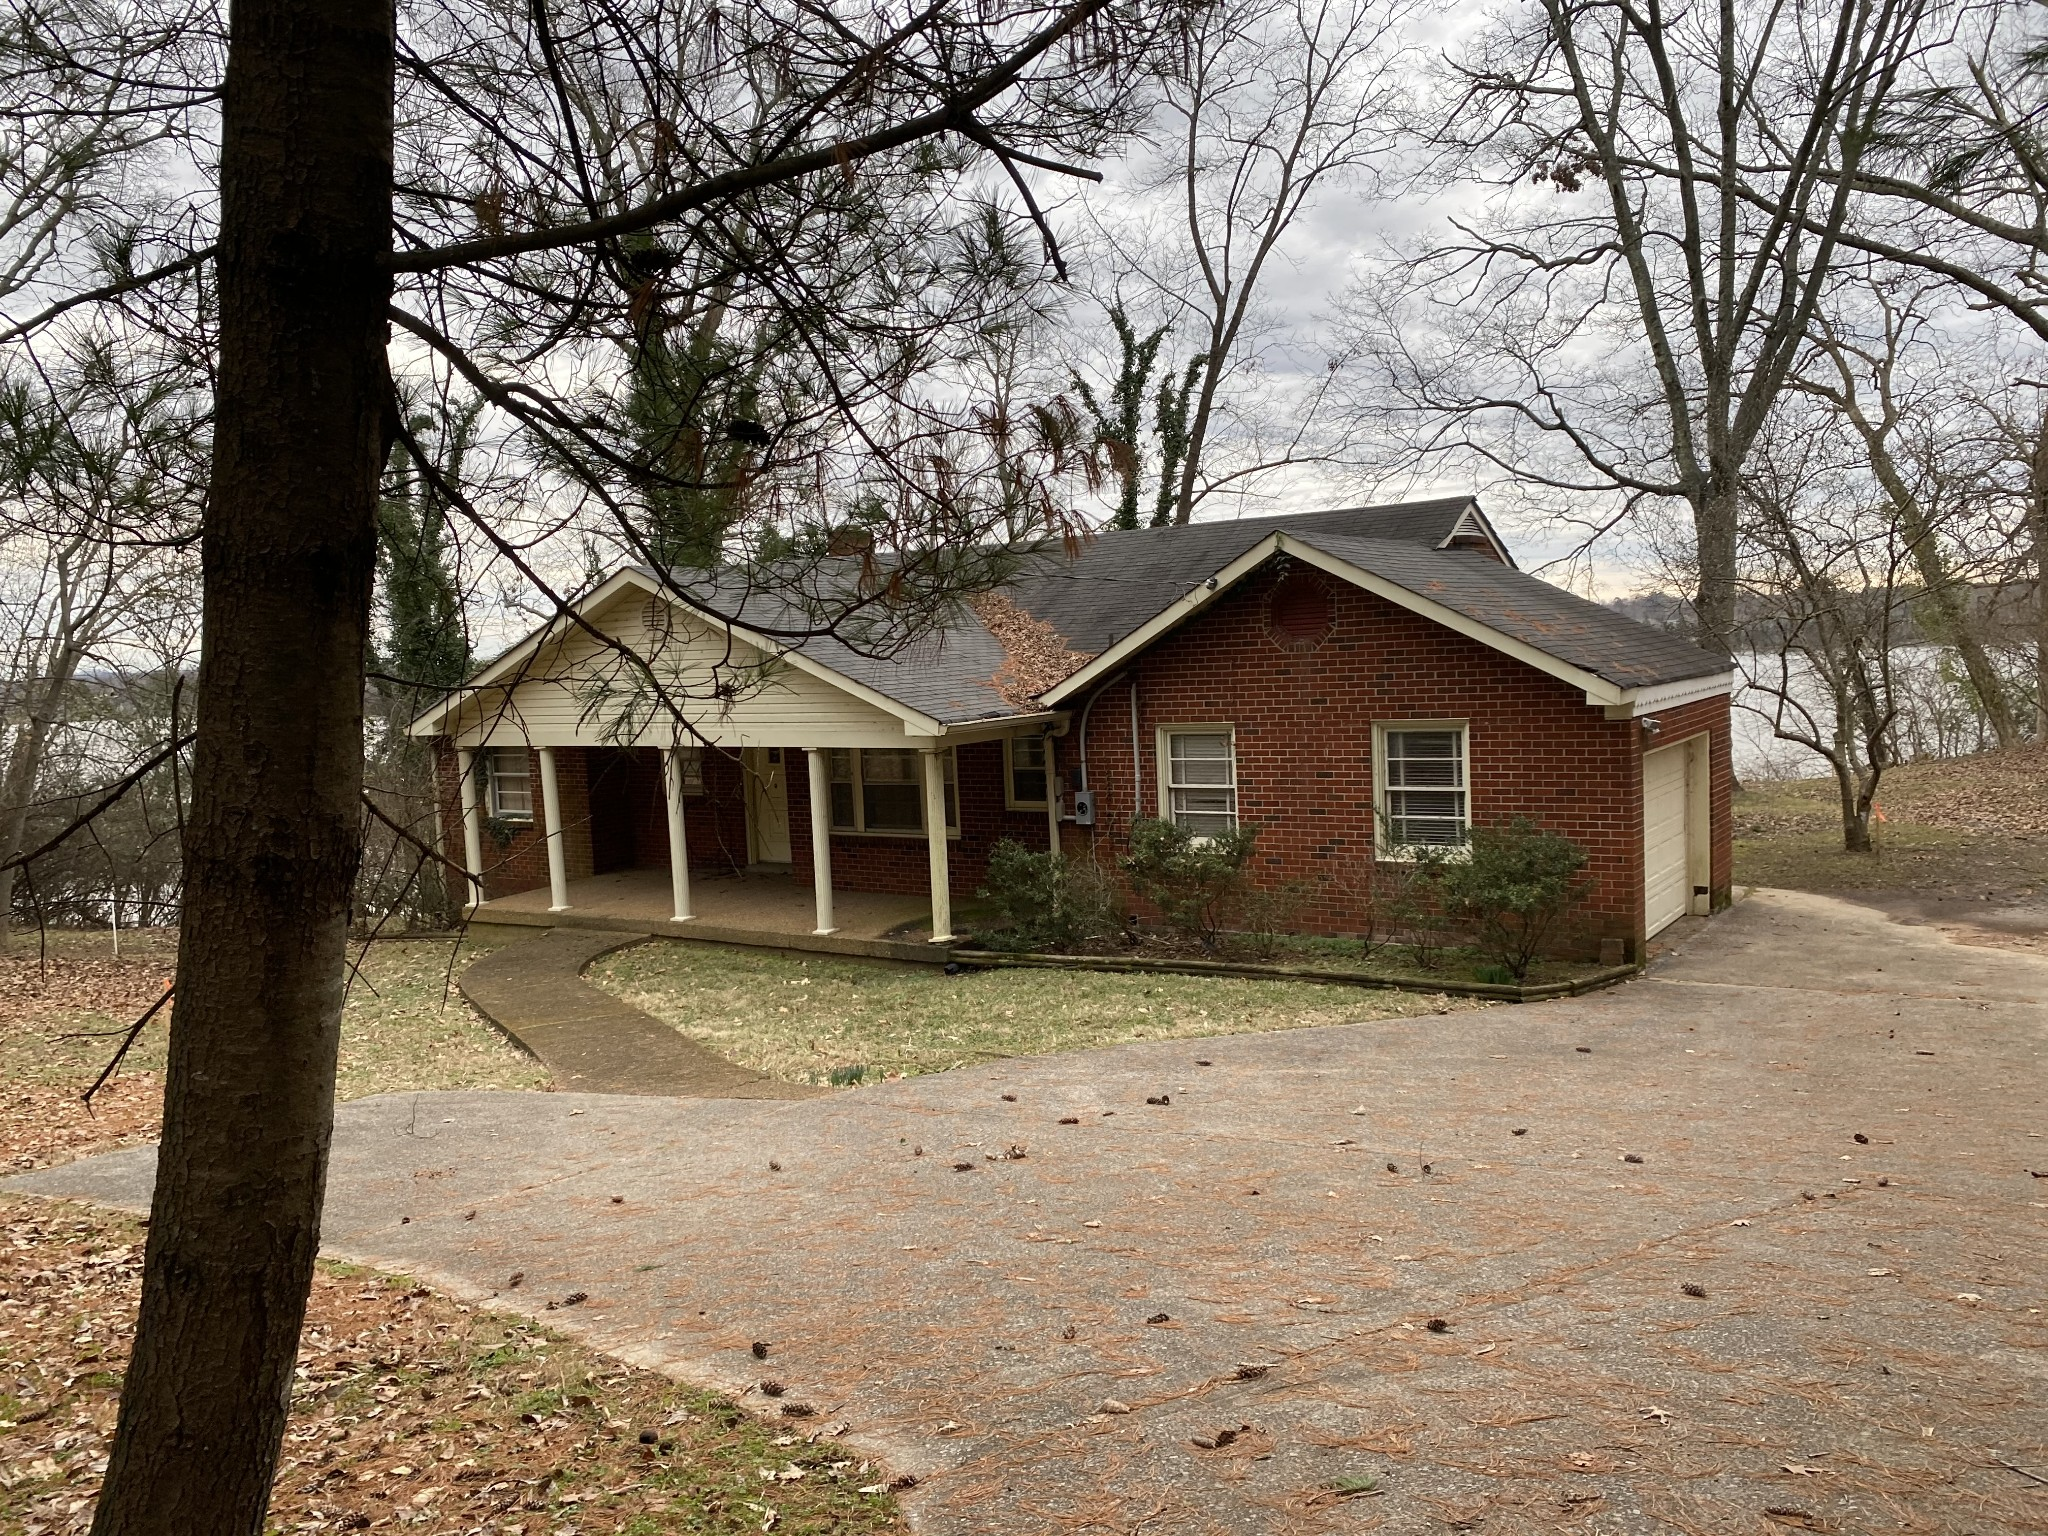 13 Jones Cir, Old Hickory, TN 37138 - Old Hickory, TN real estate listing